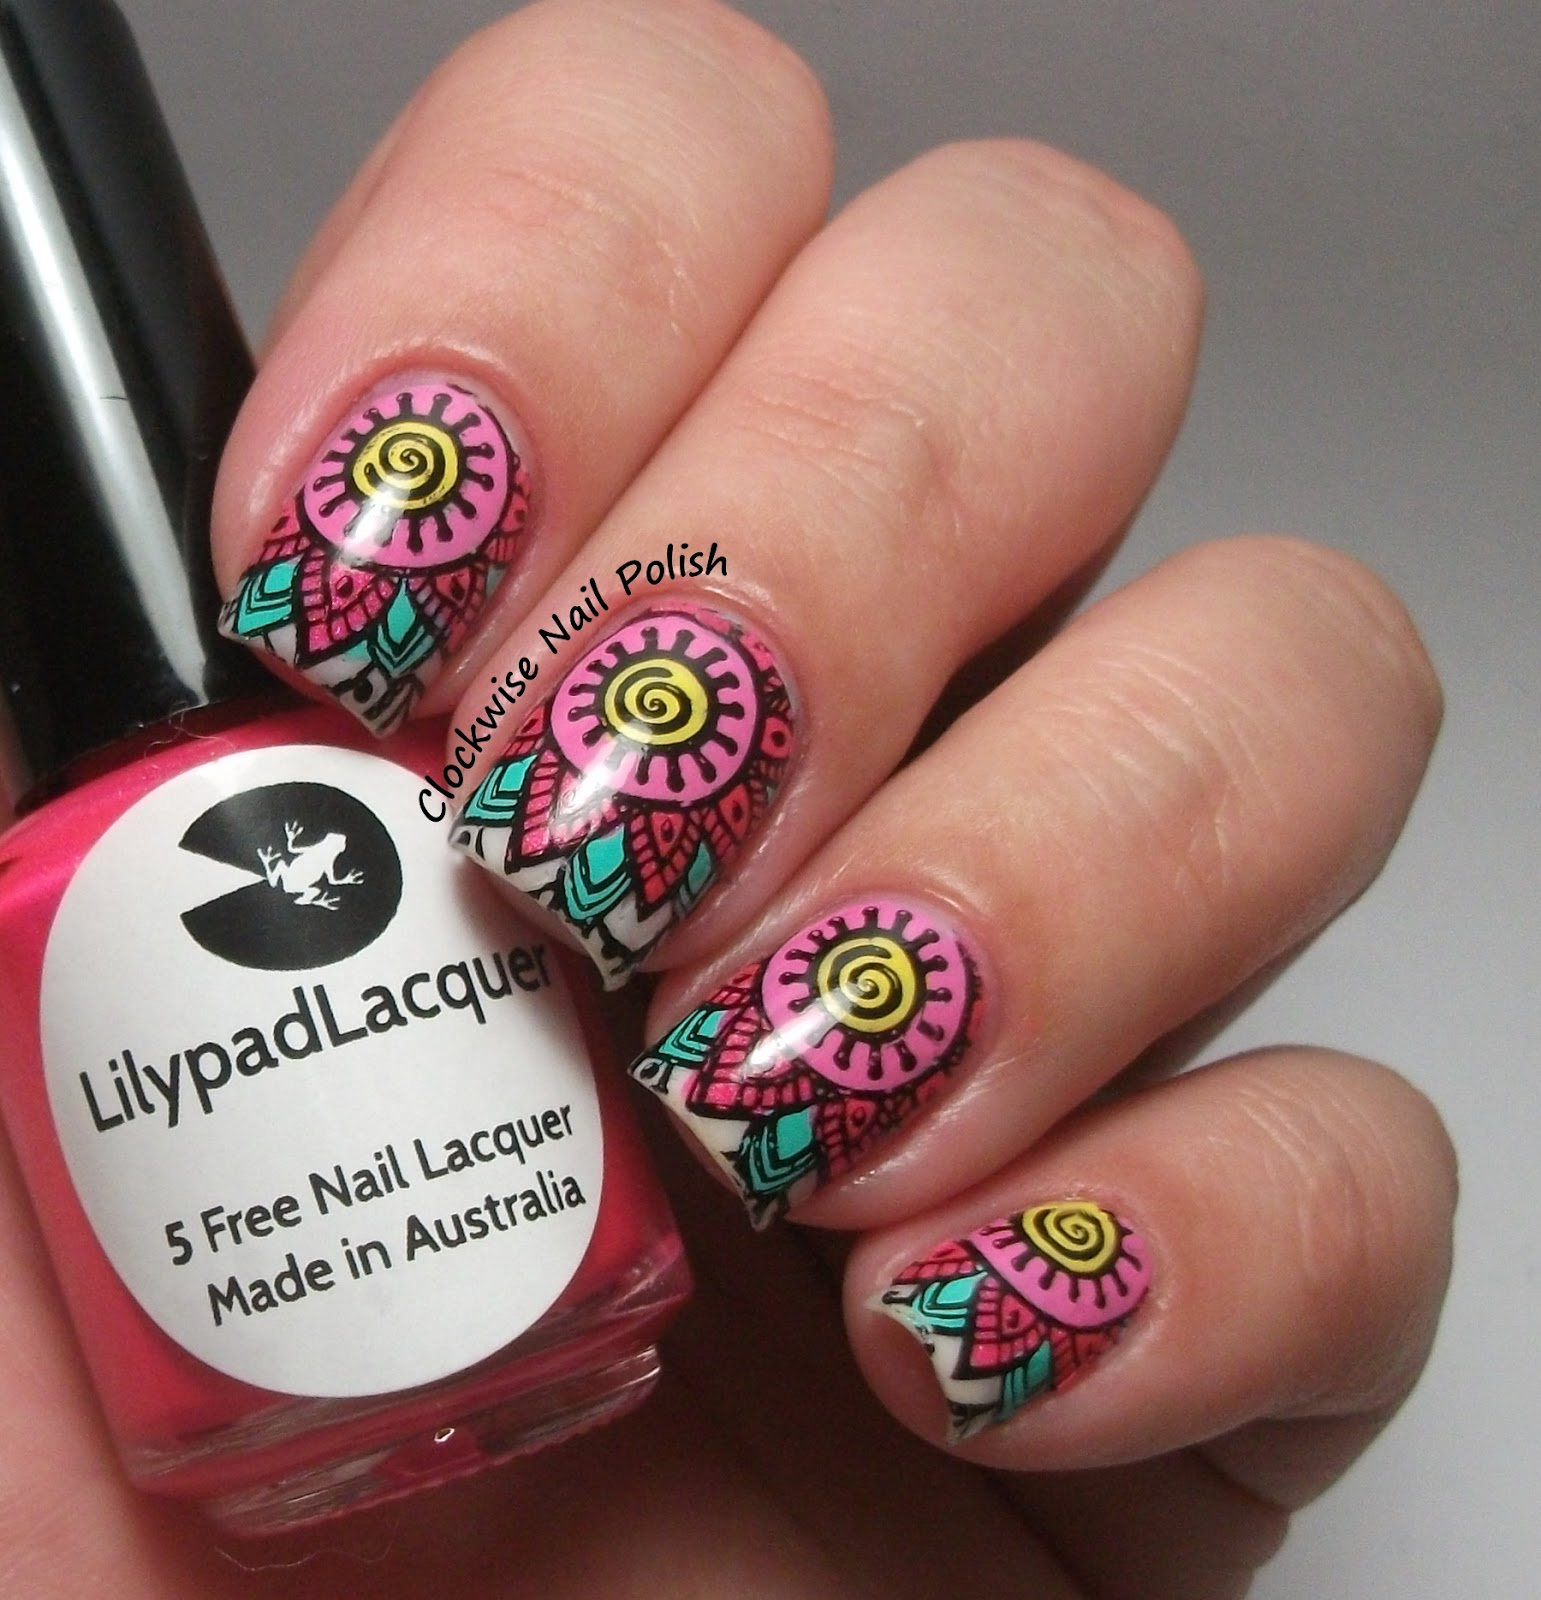 Emejing Cute Nail Polish Designs To Do At Home Images Decoration Design Ideas